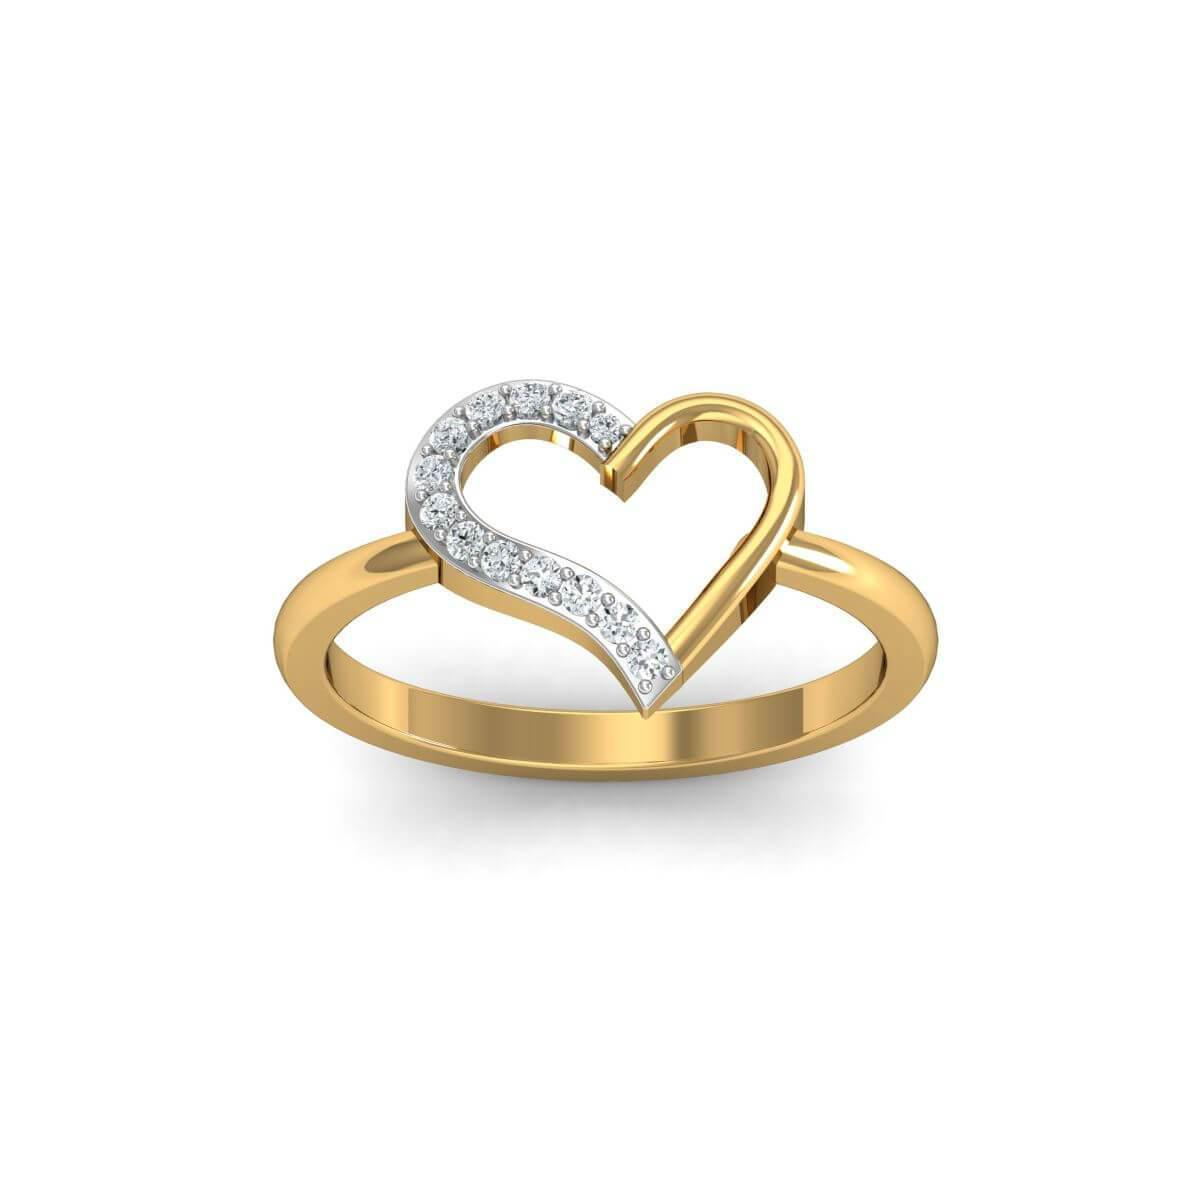 Diamoire Jewels 18kt Yellow Gold Pave 0.24ct Diamond Infinity Ring - UK G 1/4 - US 3 1/2 - EU 45 3/4 K5UDIKG